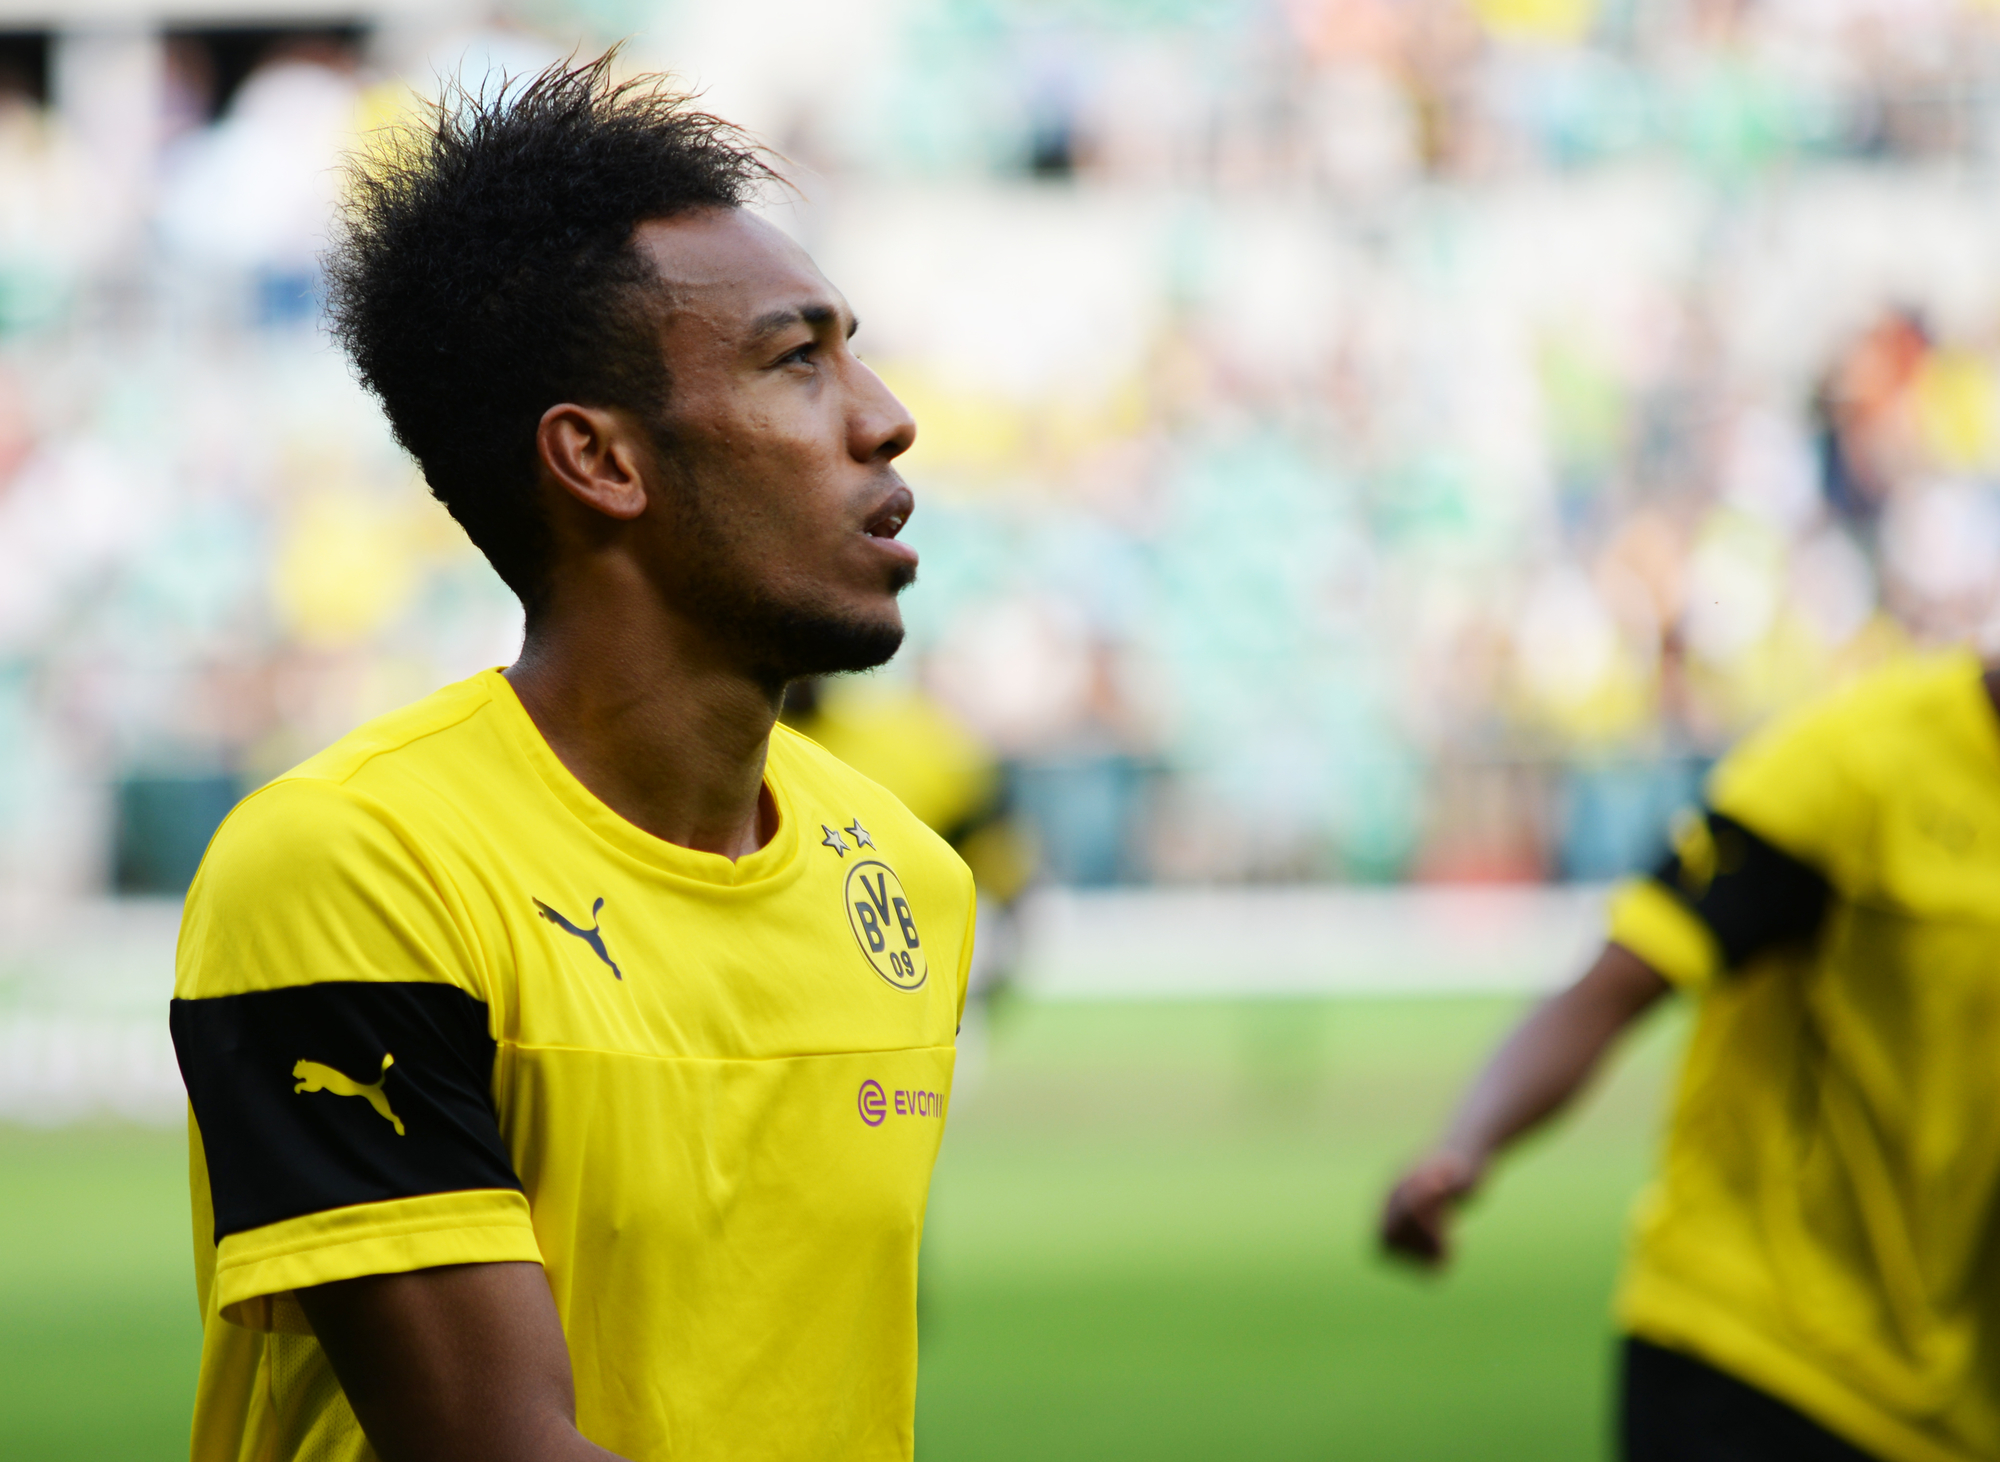 Pierre-Emerick Aubameyang makes the January 31st Deadline Transfer Round-up News